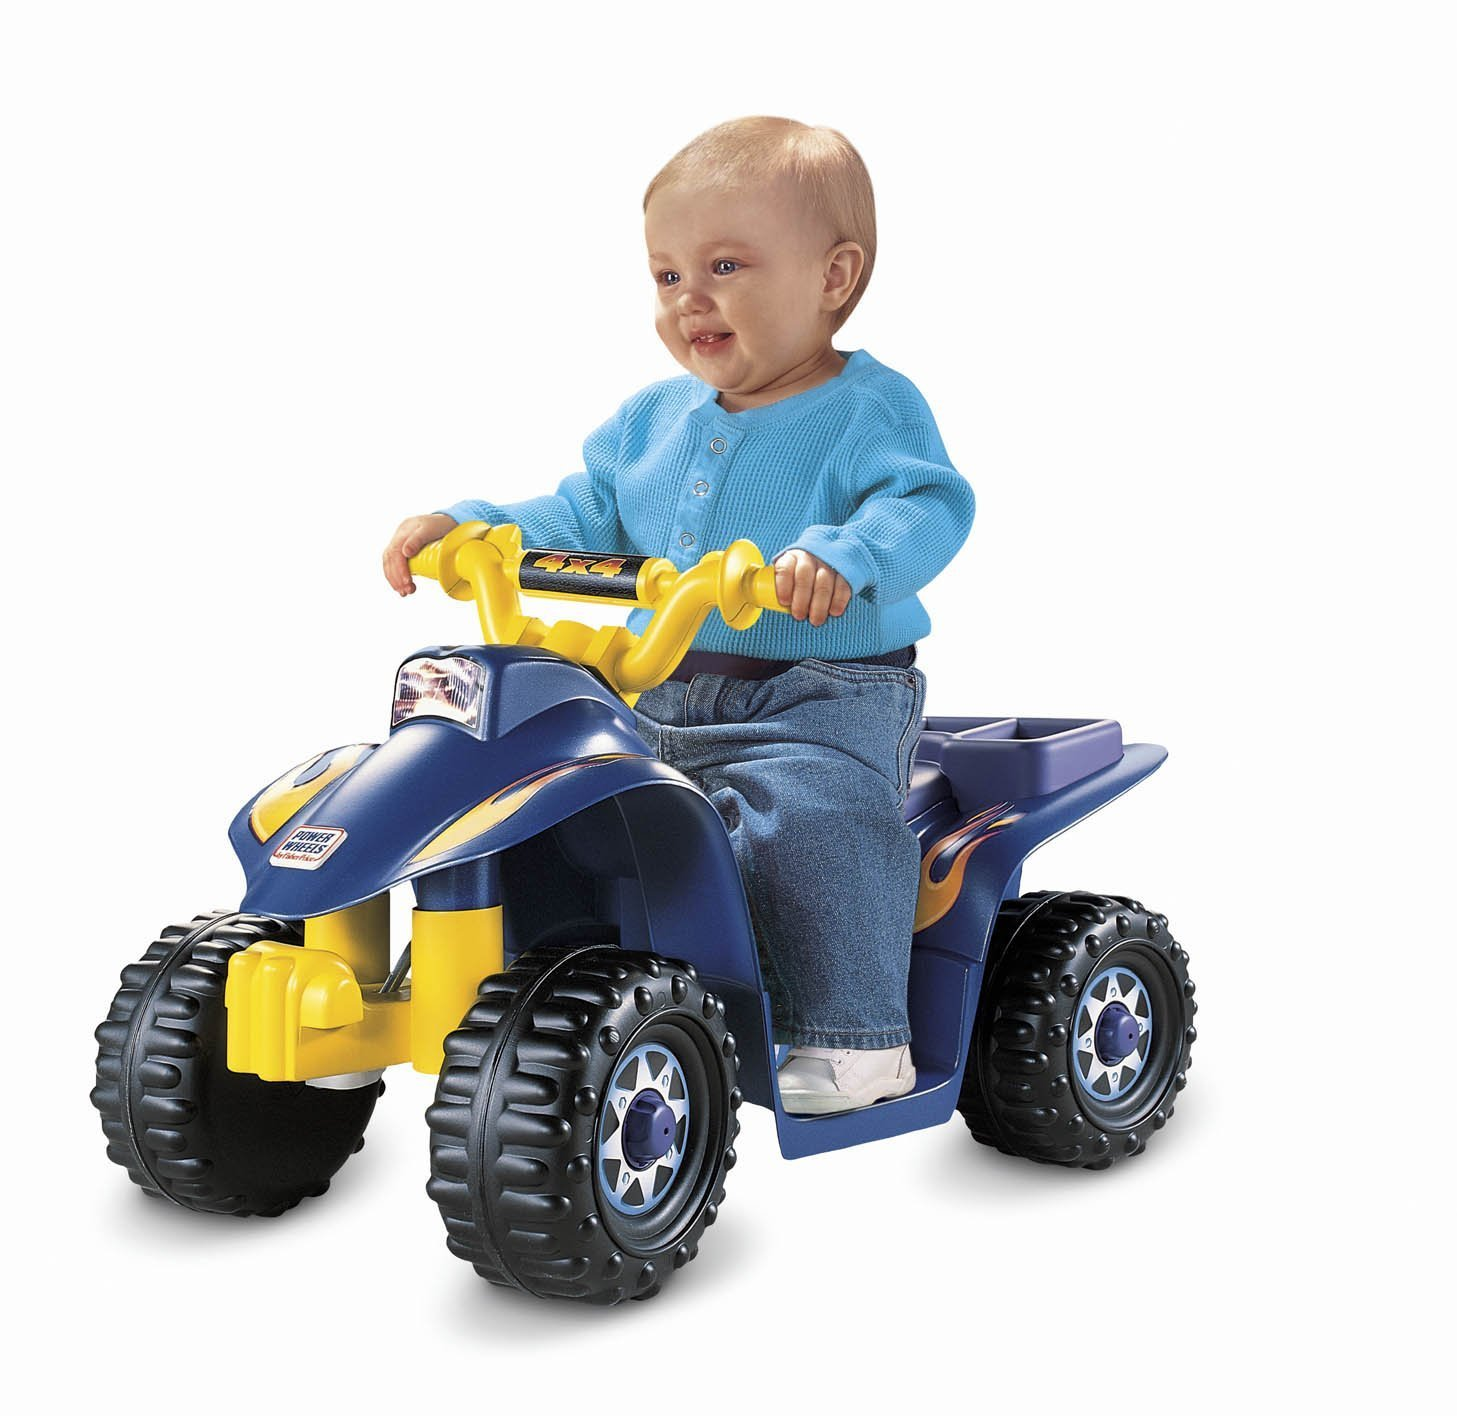 Toys For Toddler Boys 2 : Hot christmas gifts best toys for baby boys age — kathln